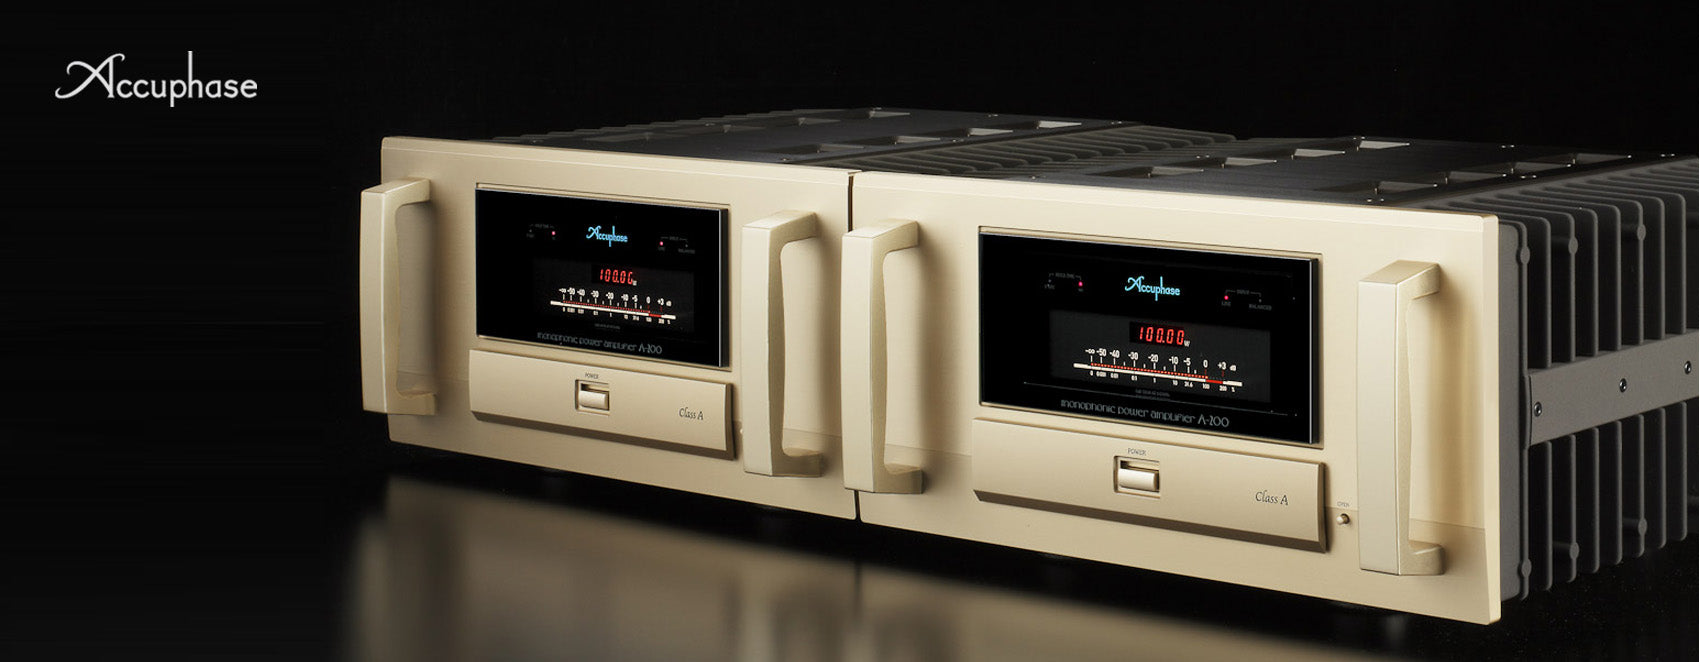 Accuphase integrated stereo amplifiers